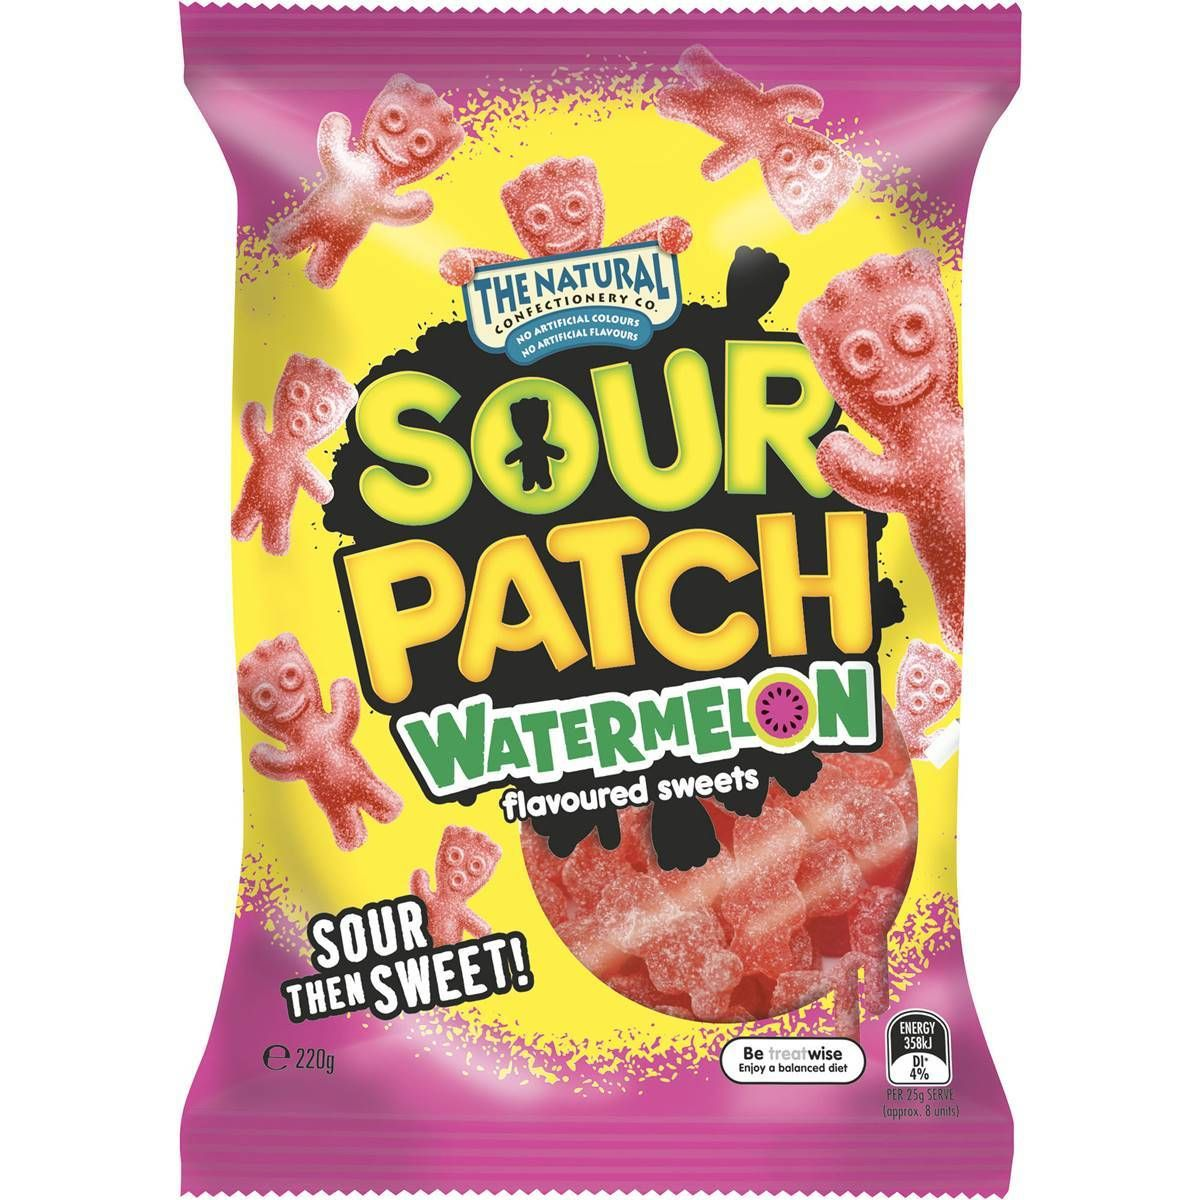 The Natural Confectionery Co Sour Patch Watermelon 220g In 2020 Sour Patch Watermelon Sour Patch Sour Patch Kids